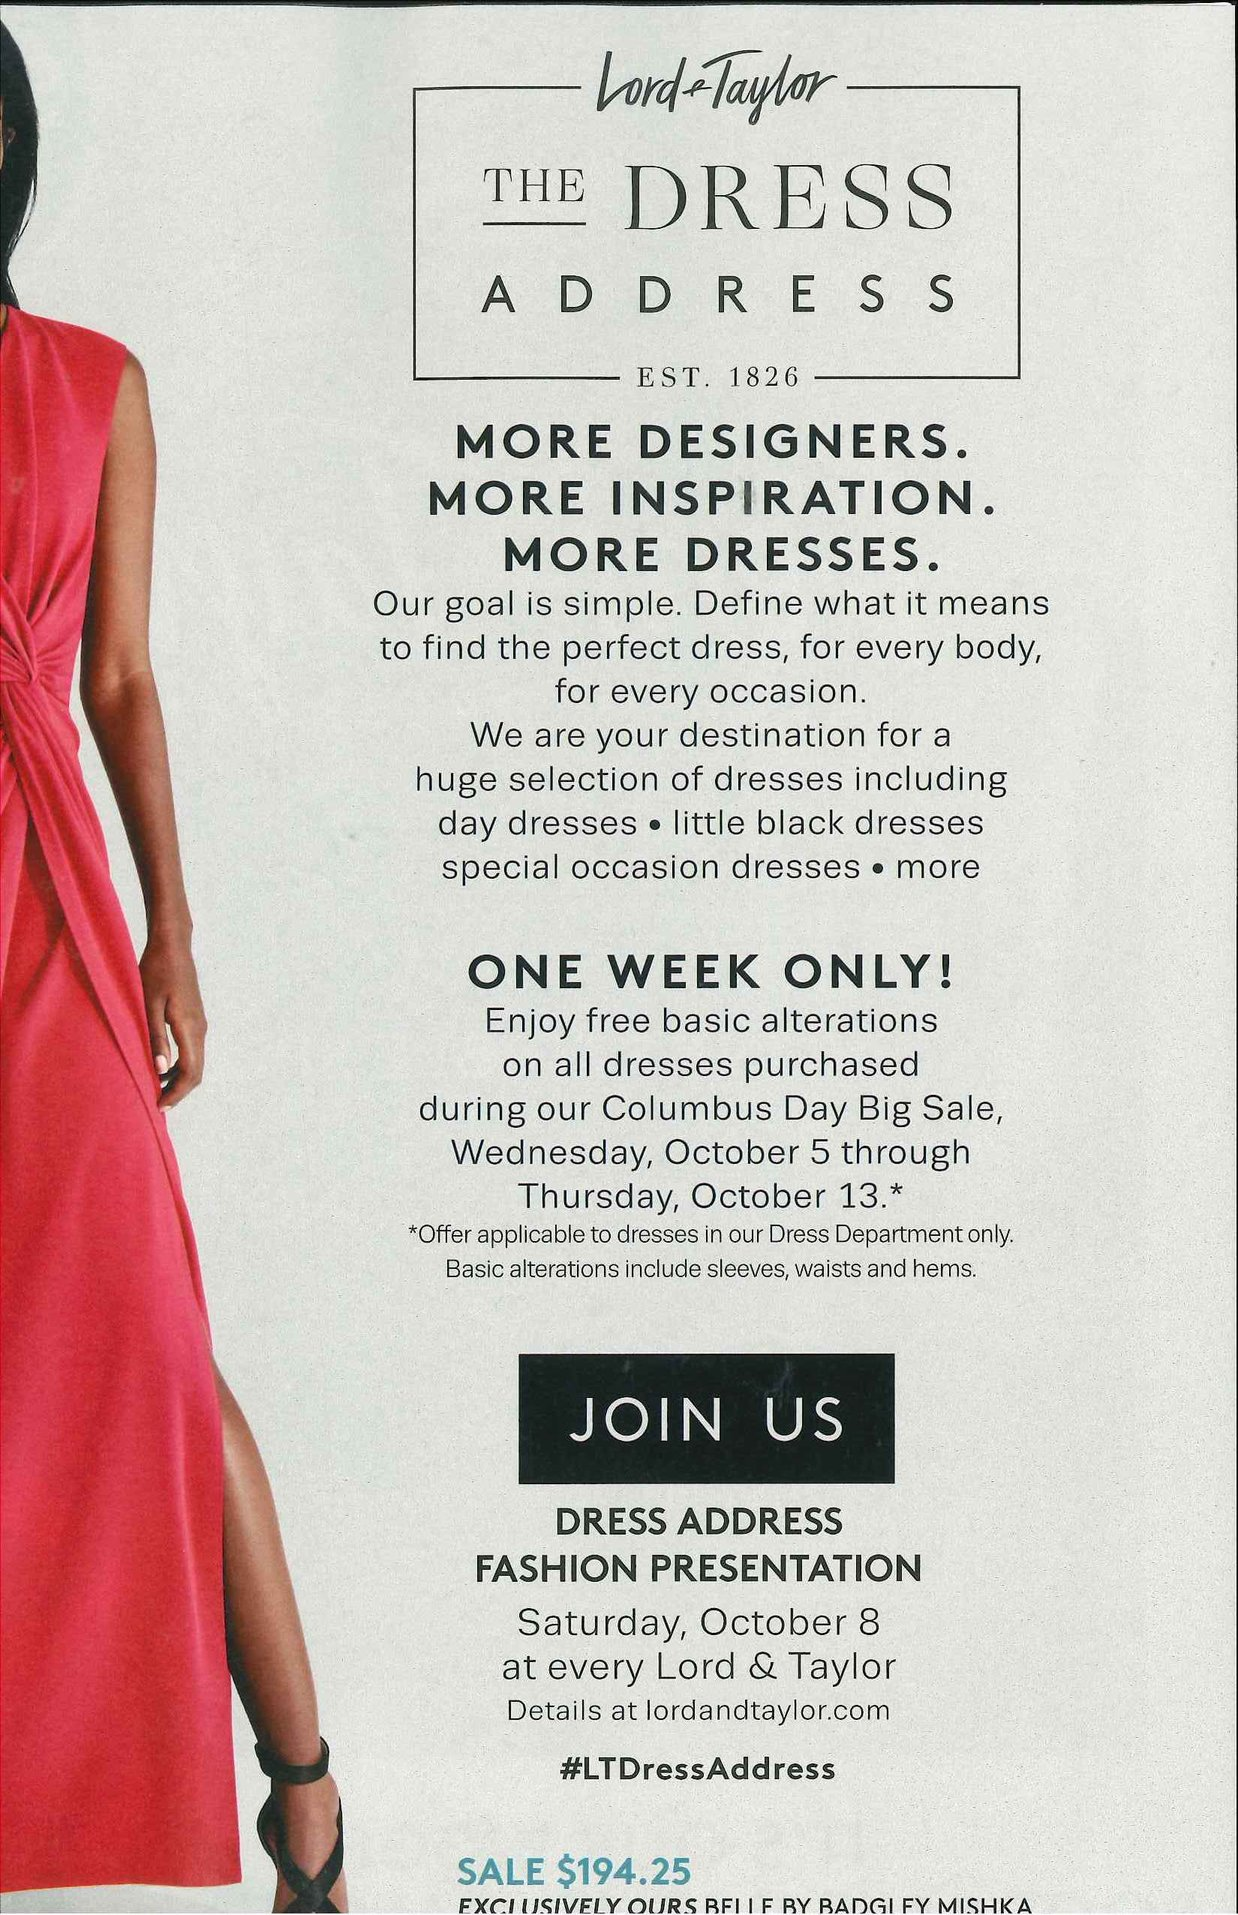 Dress Address Event At Lord & Taylor THIS SATURDAY 10/8 @ 12PM-2PM hosted by GG!